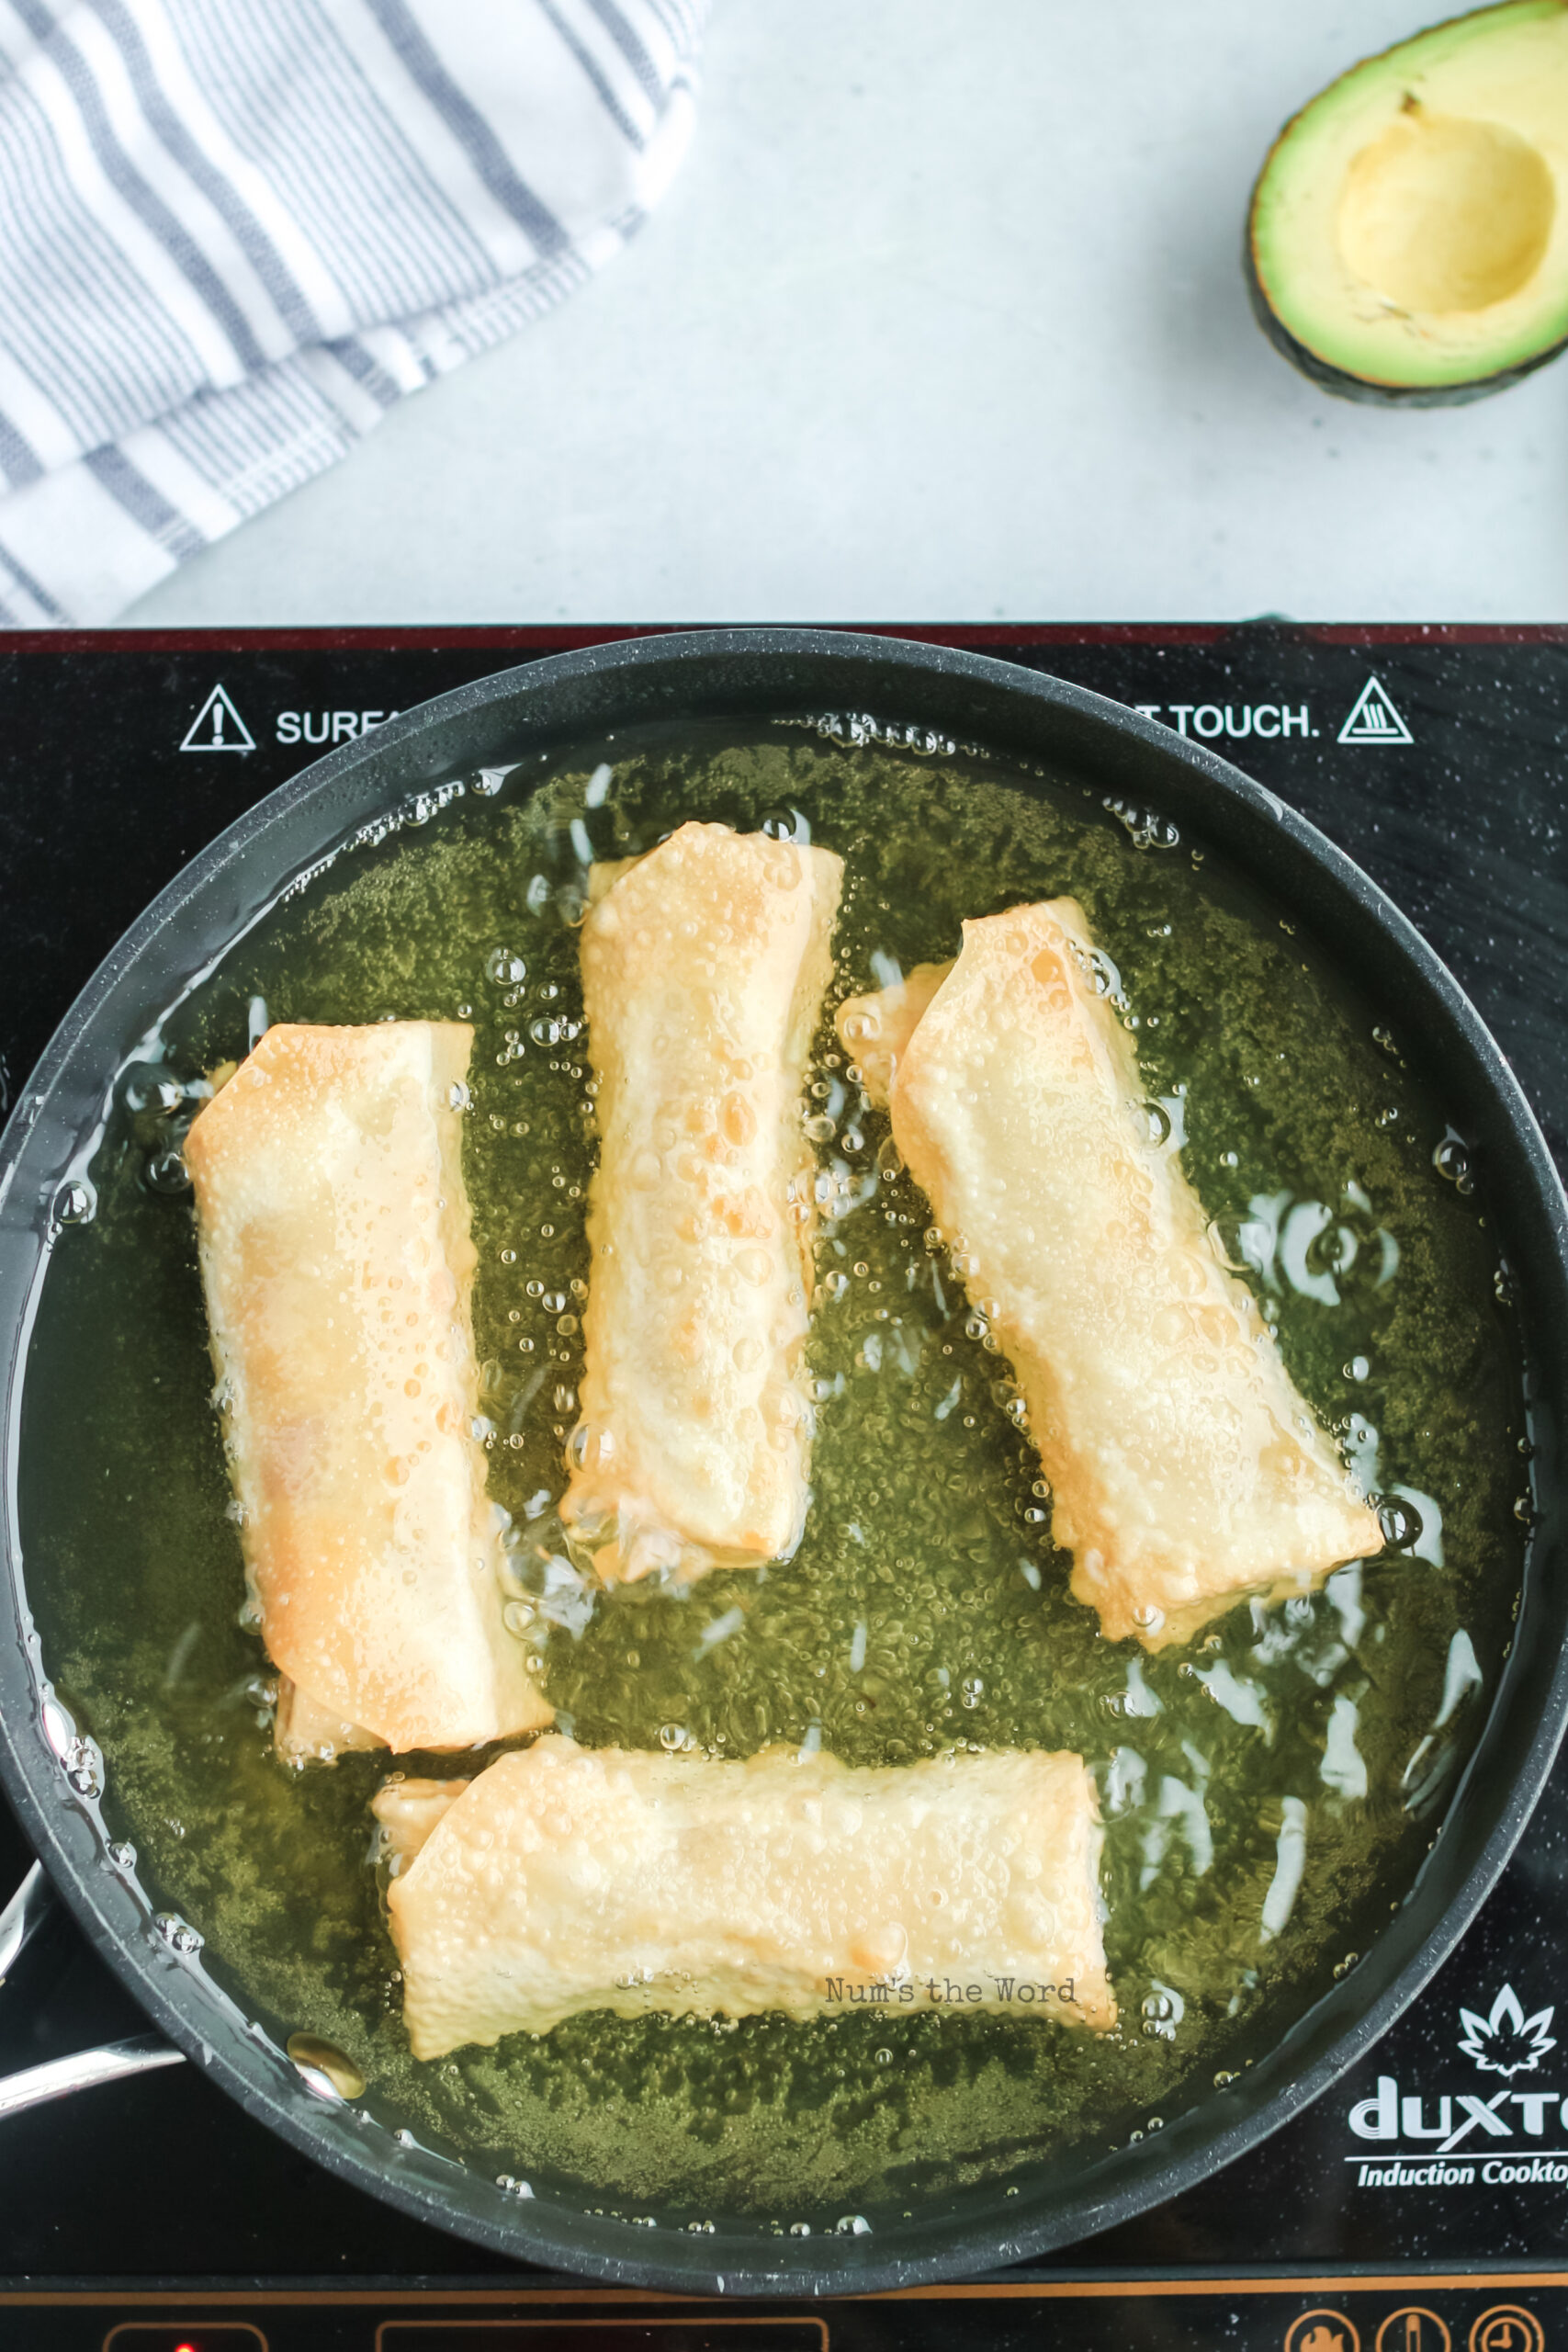 egg rolls being fried in oil in a skillet